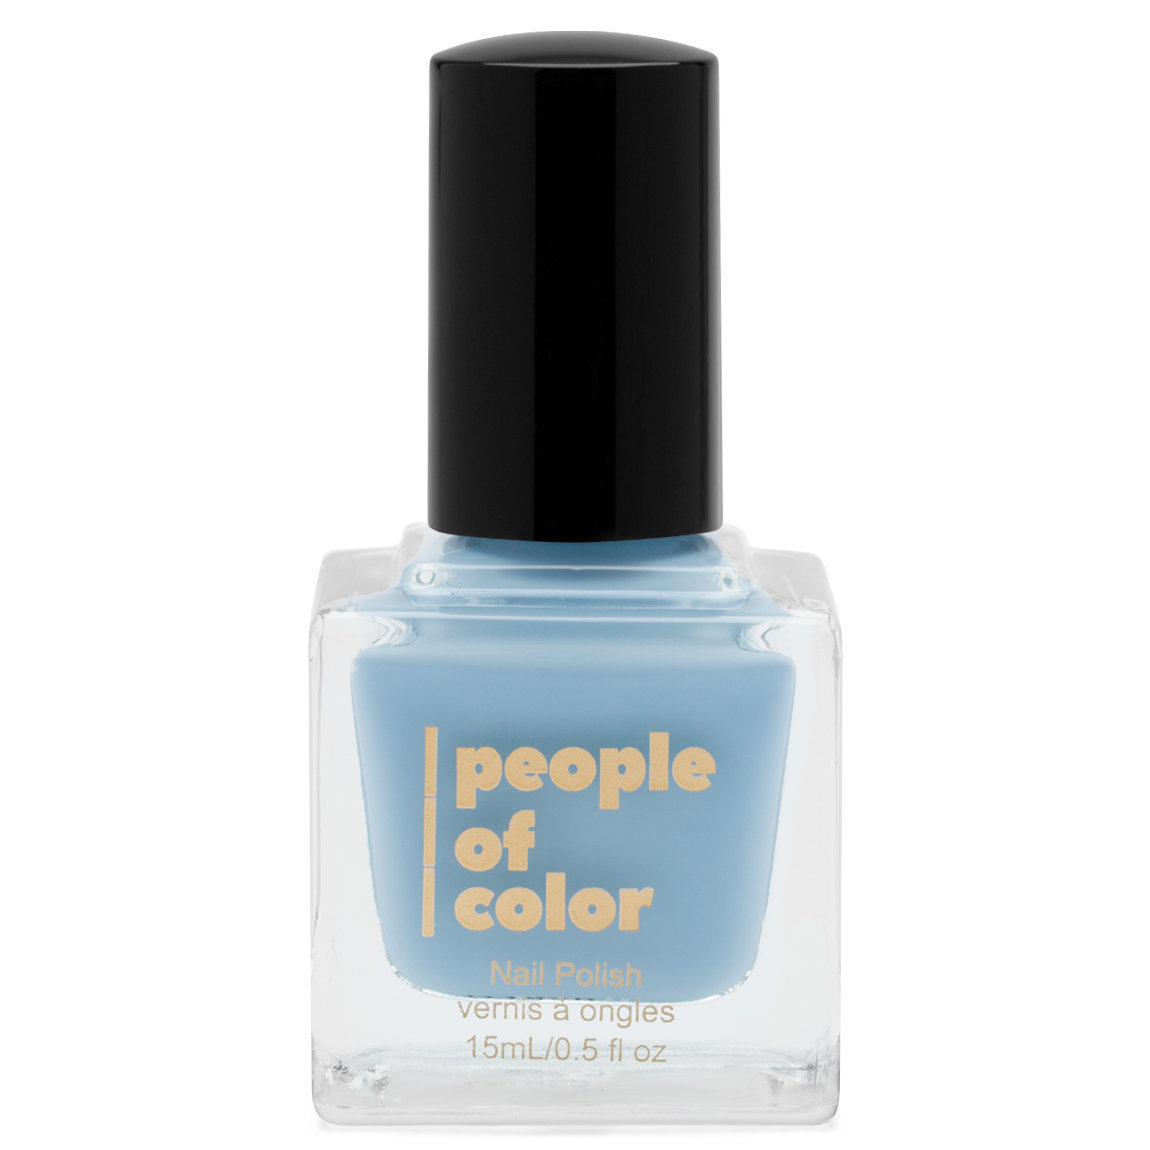 People of Color Beauty Nail Polish Moremi alternative view 1.